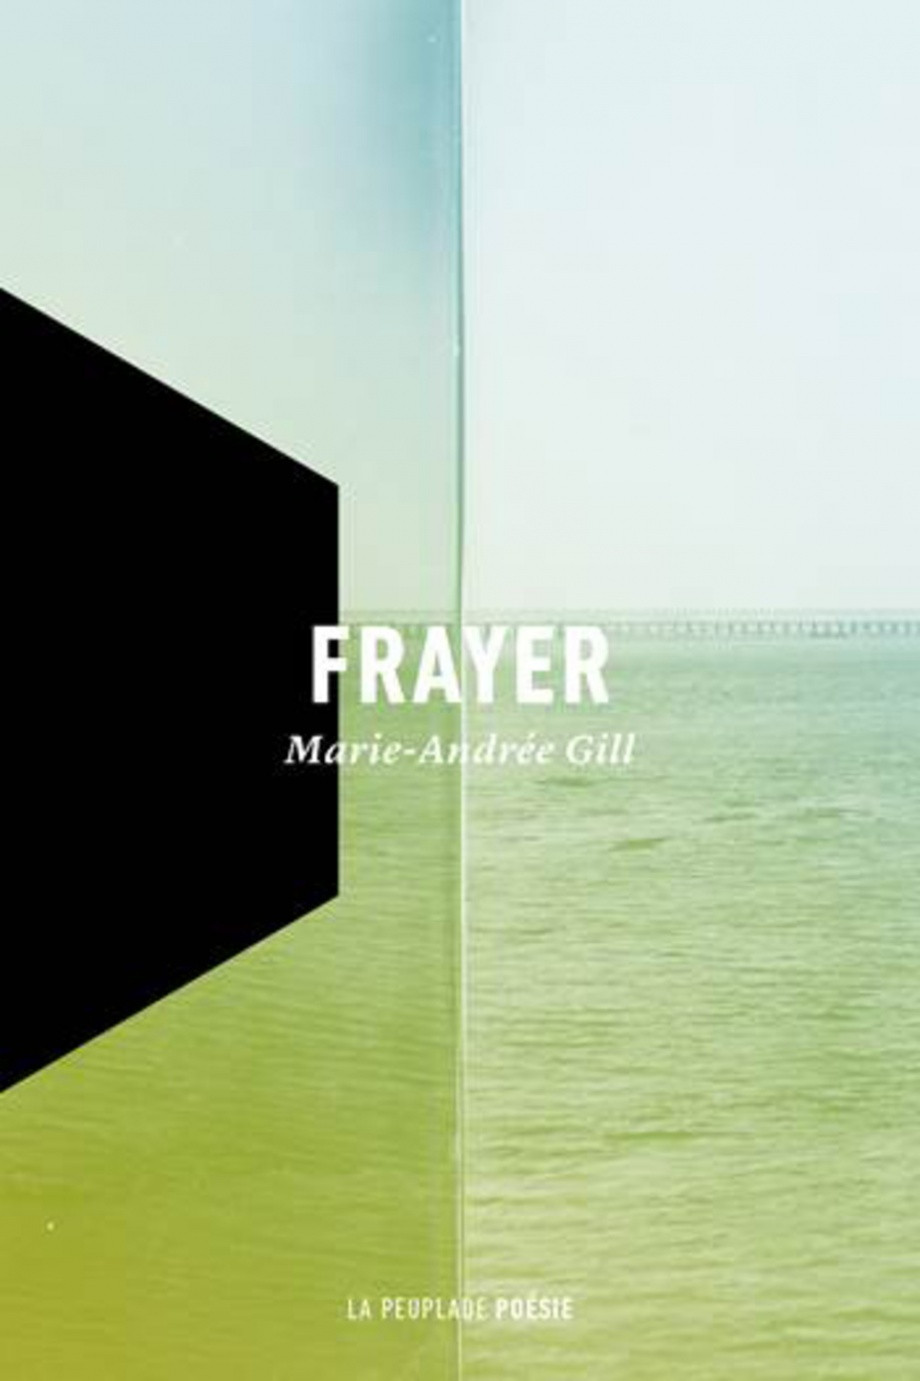 Frayer, page couverture